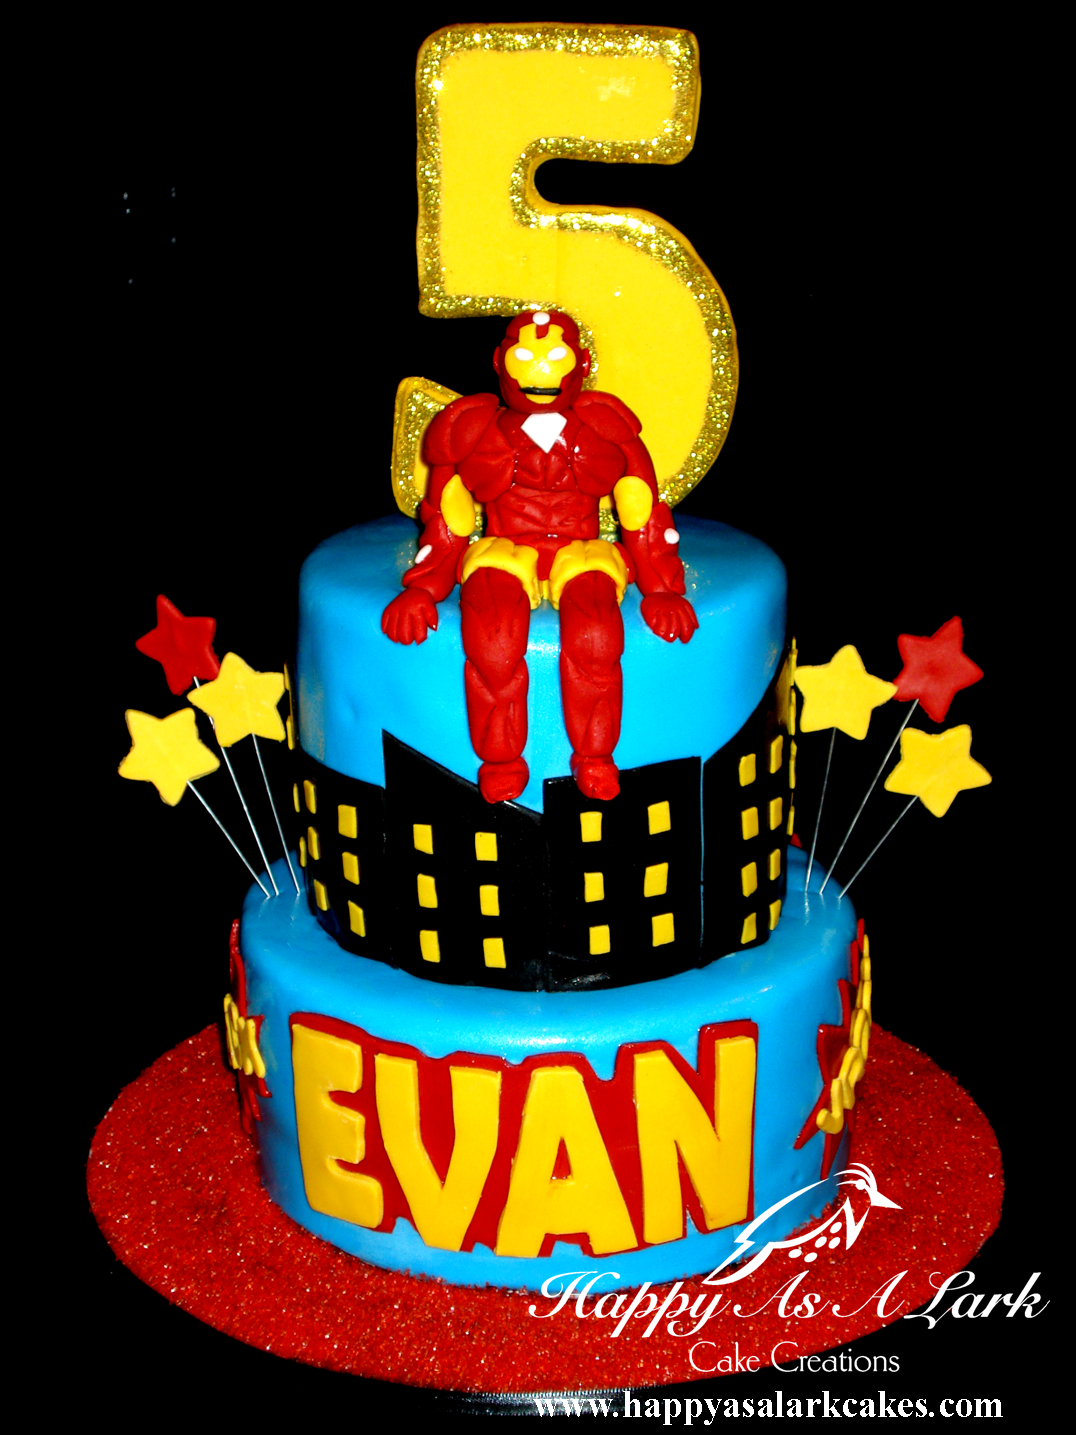 I find it ironic I was looking for Iron Man cake ideas for Evans